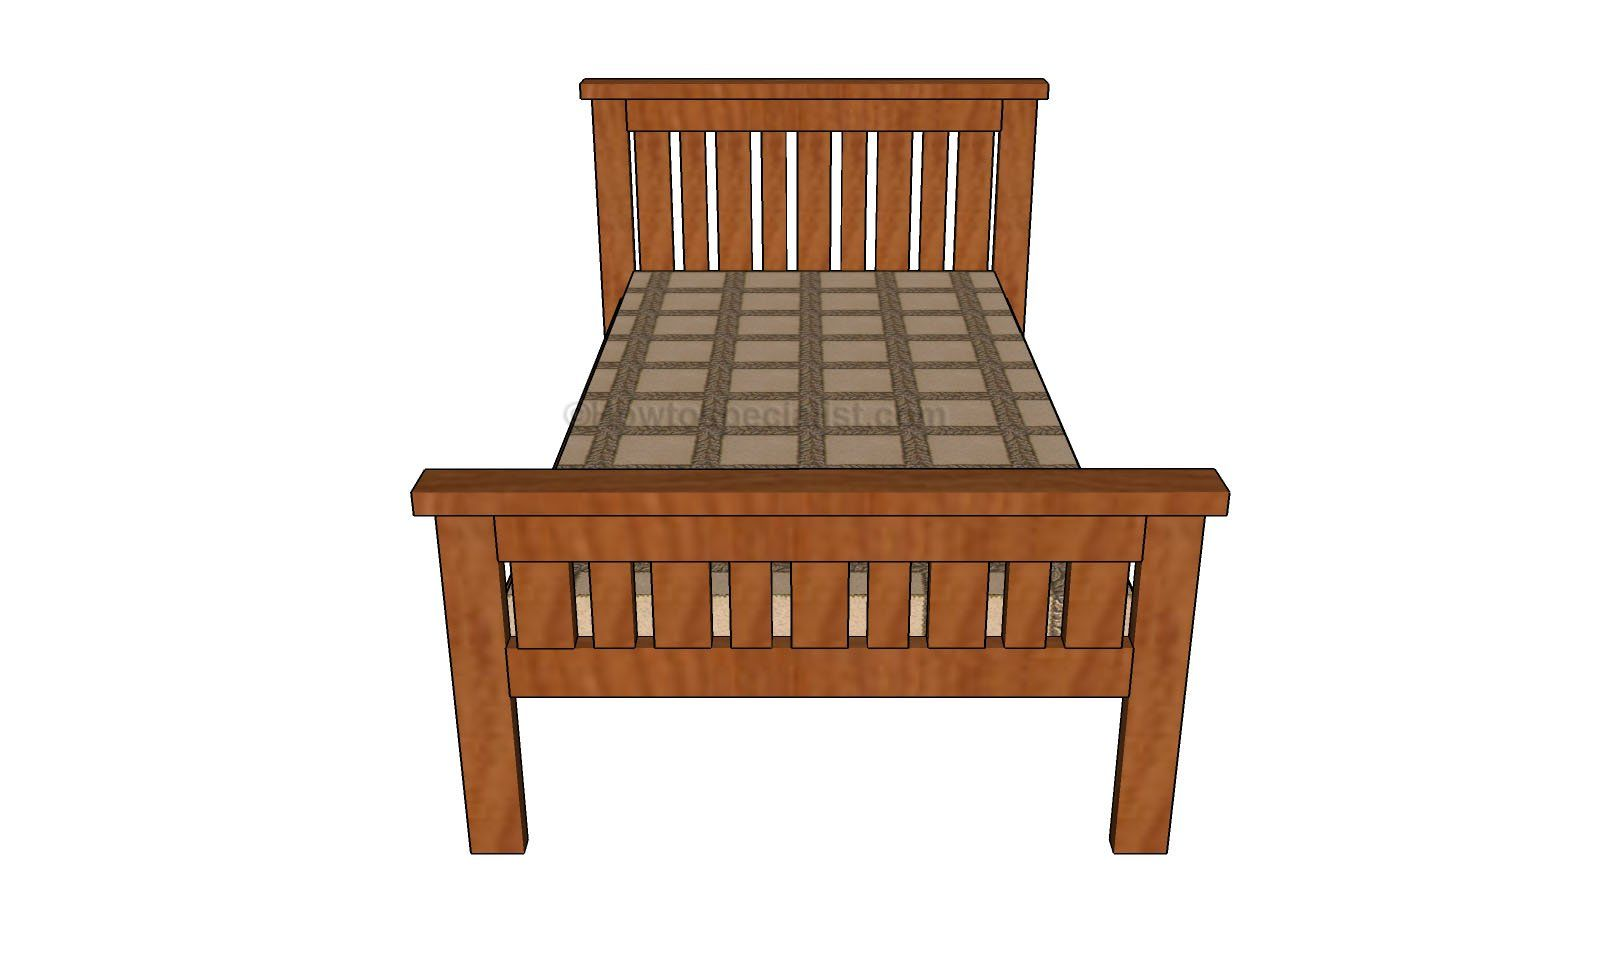 2x4 Farmhouse Bed Plans Howtospecialist How To Build Step By Step Diy Plans Farmhouse Bedding Bed Frame Plans Furniture